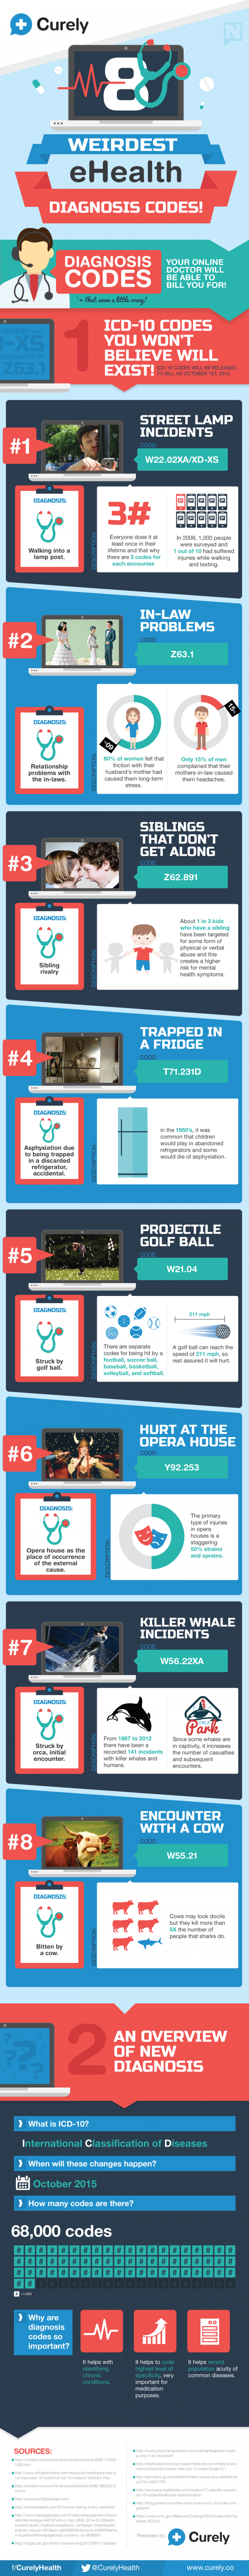 8 Weird eHealth Diagnosis Codes (ICD 10 codes) Infographic